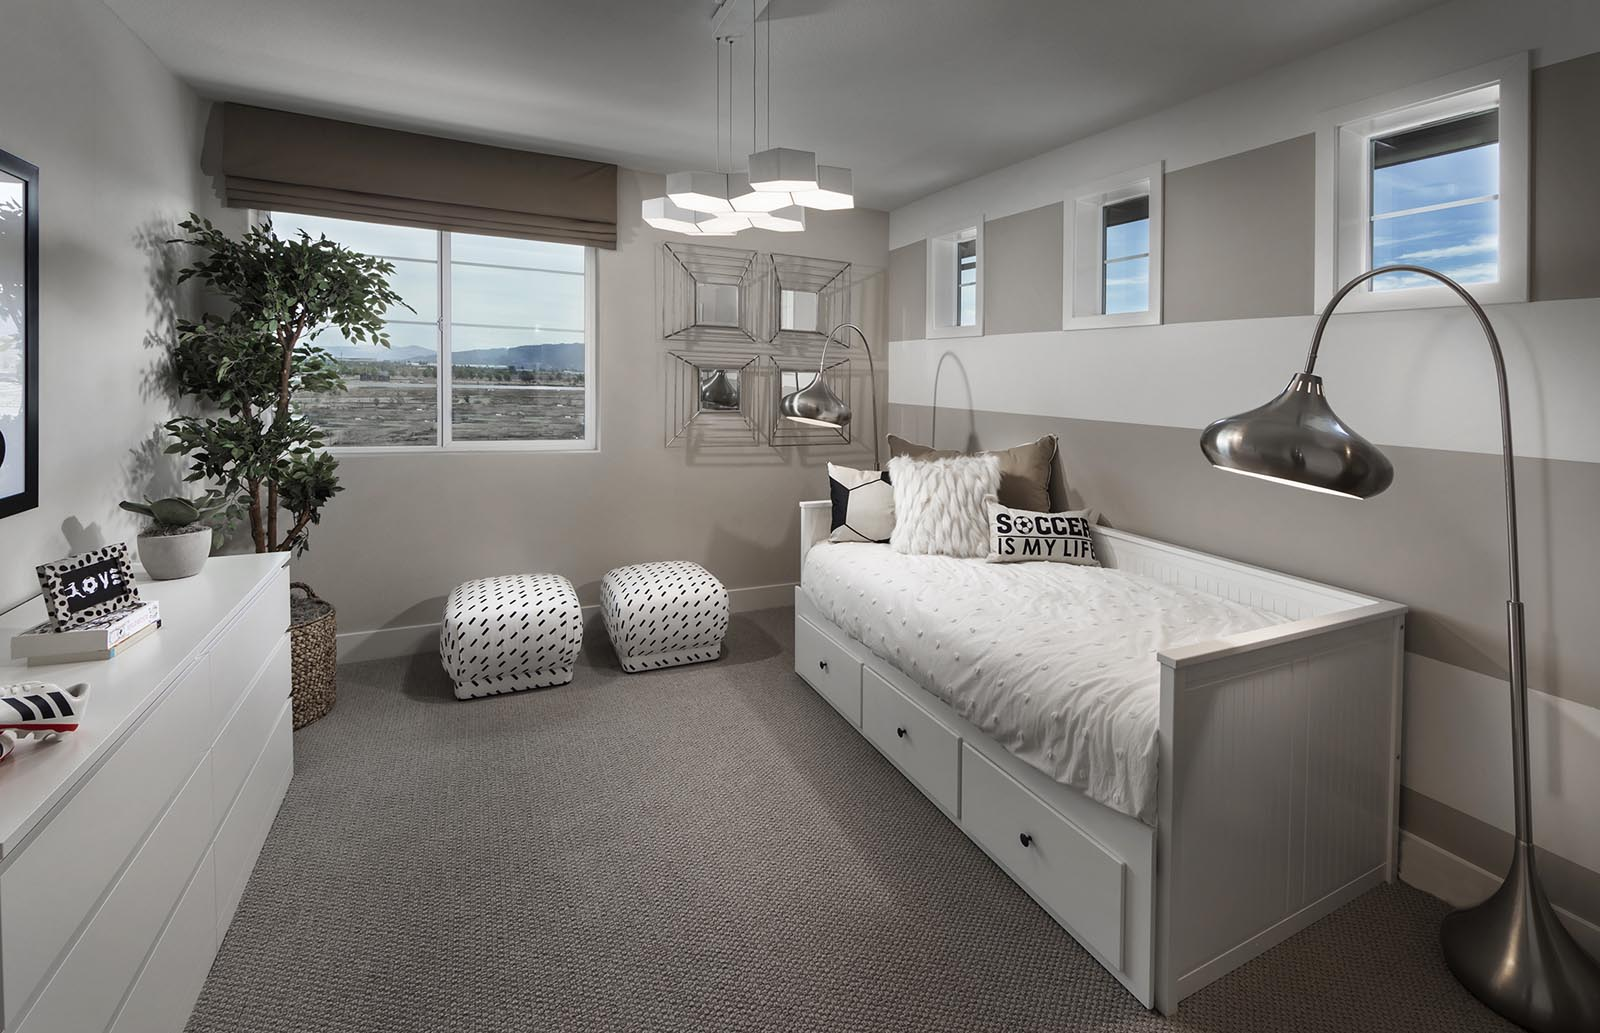 Bedroom 4 Residence 4 | Downing at Boulevard by Lennar, Dublin, CA